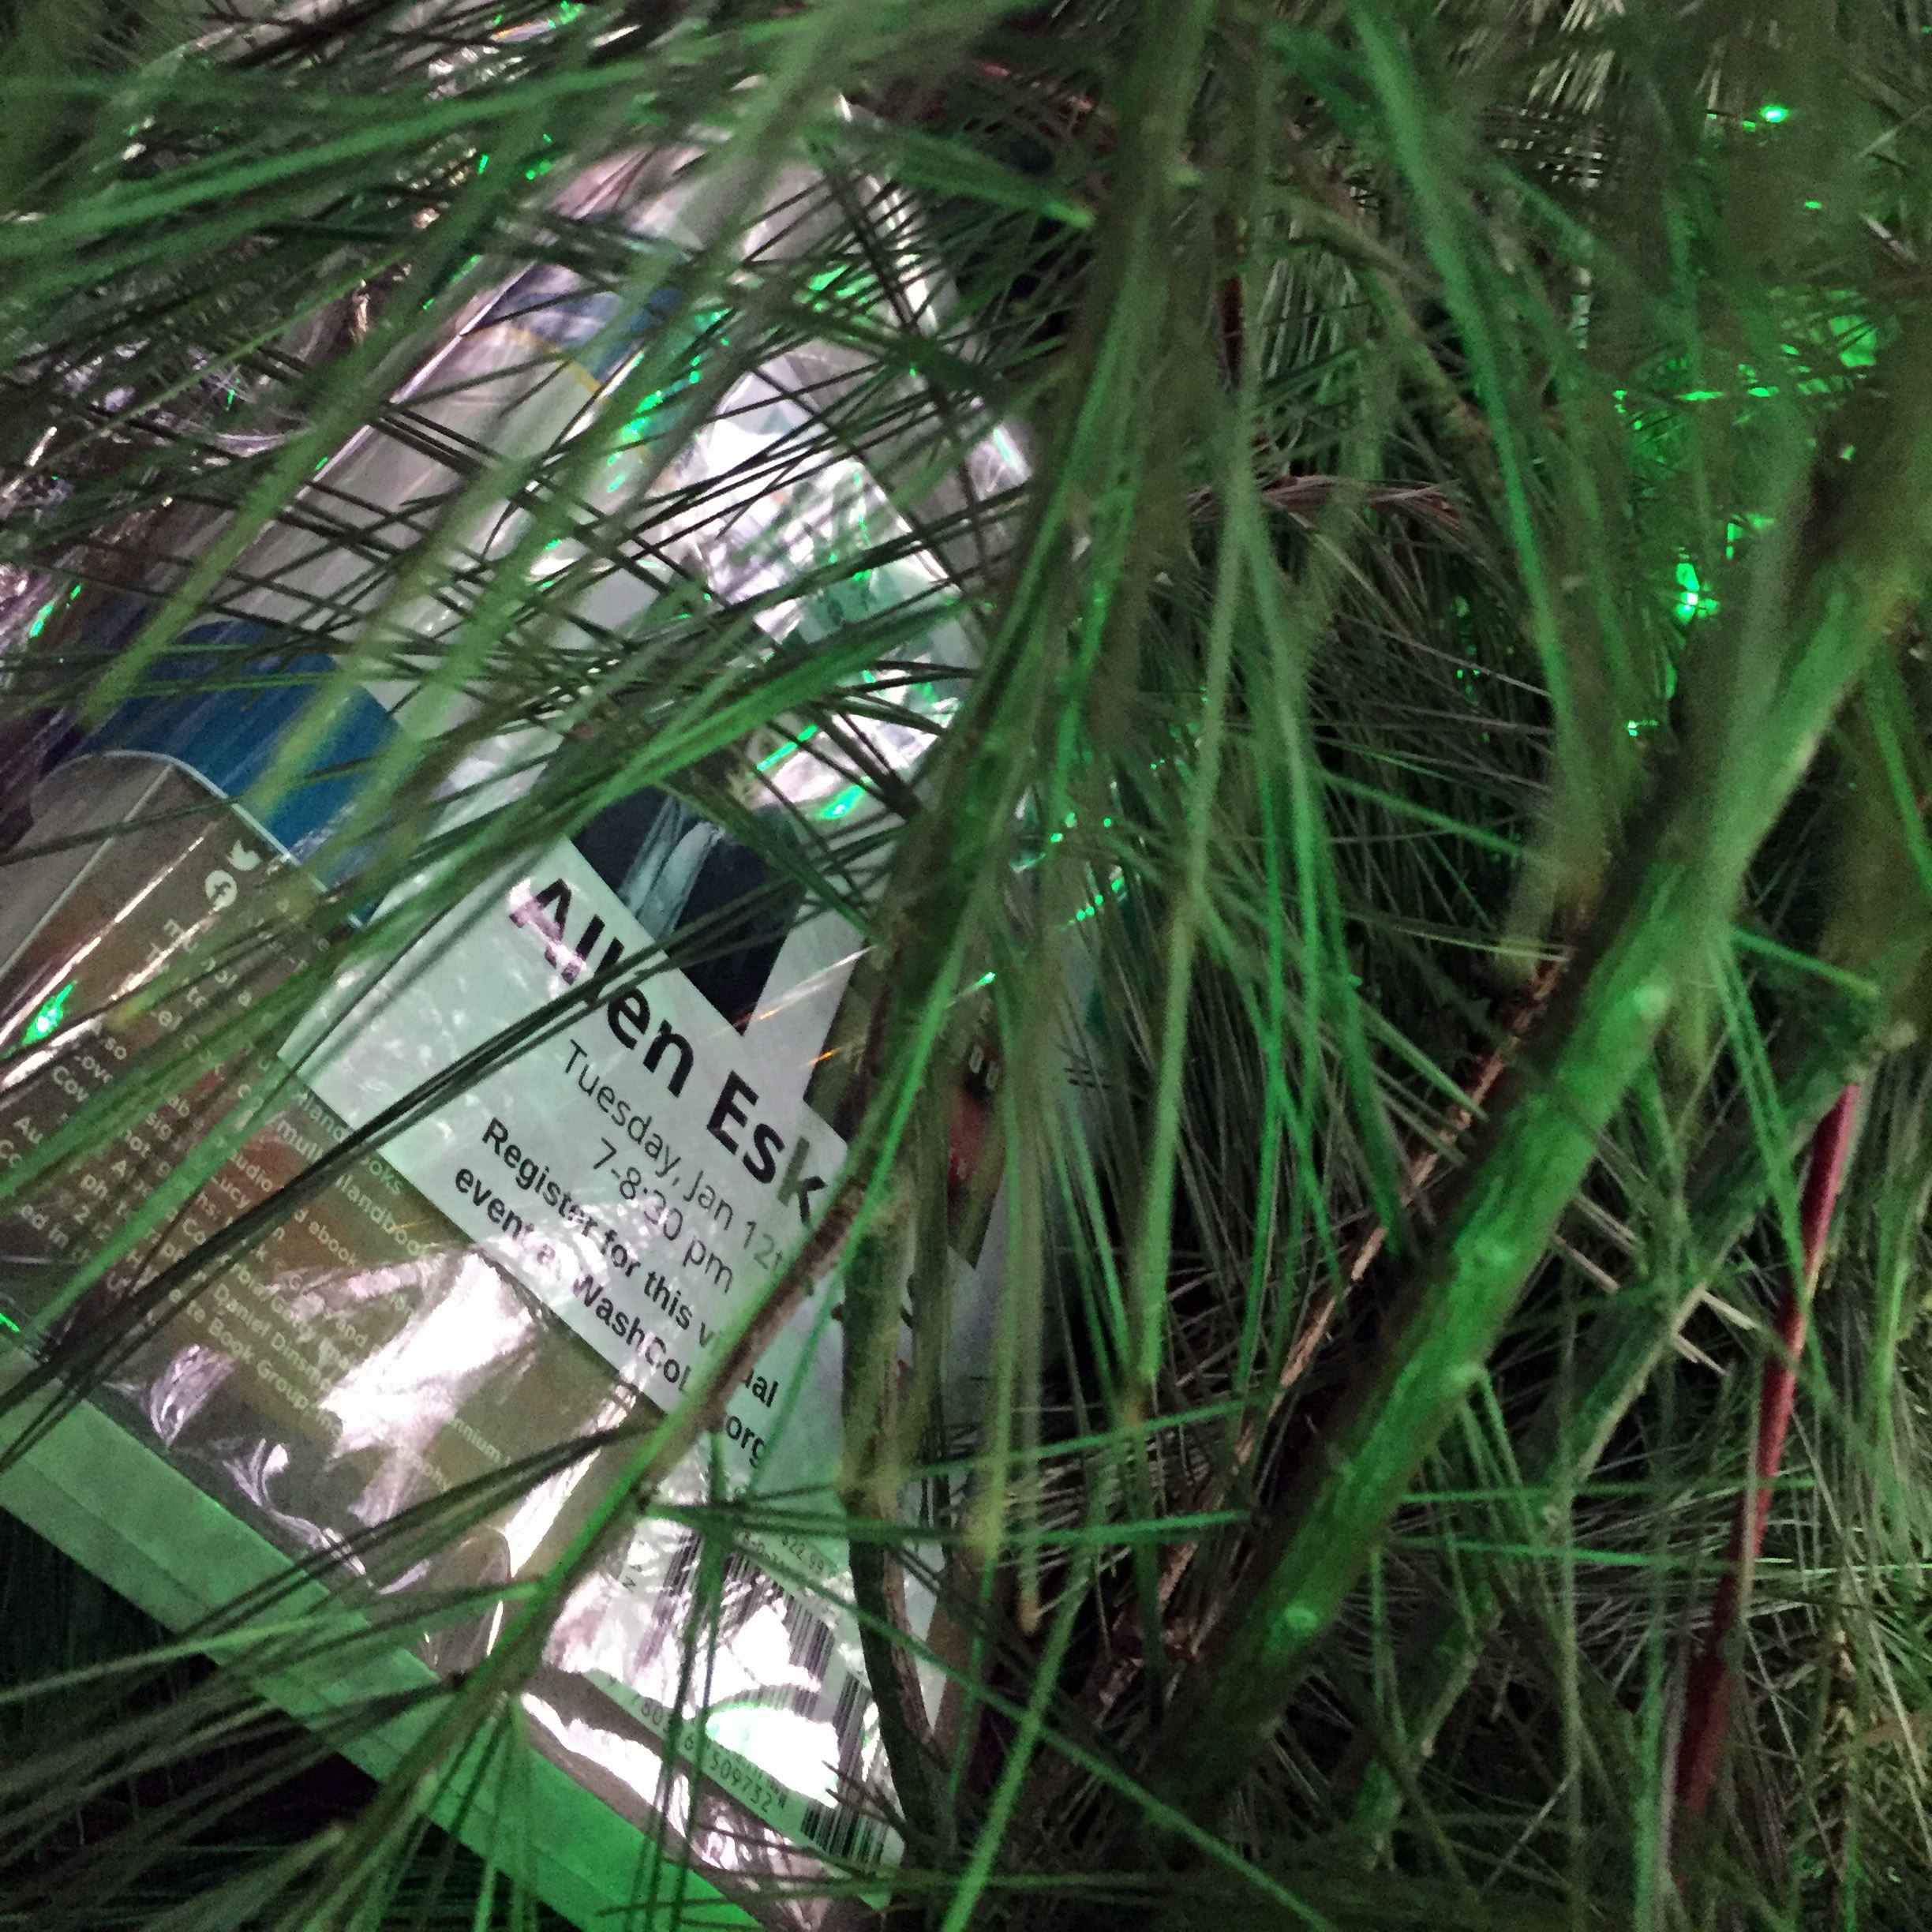 Image of book laying in a green plant